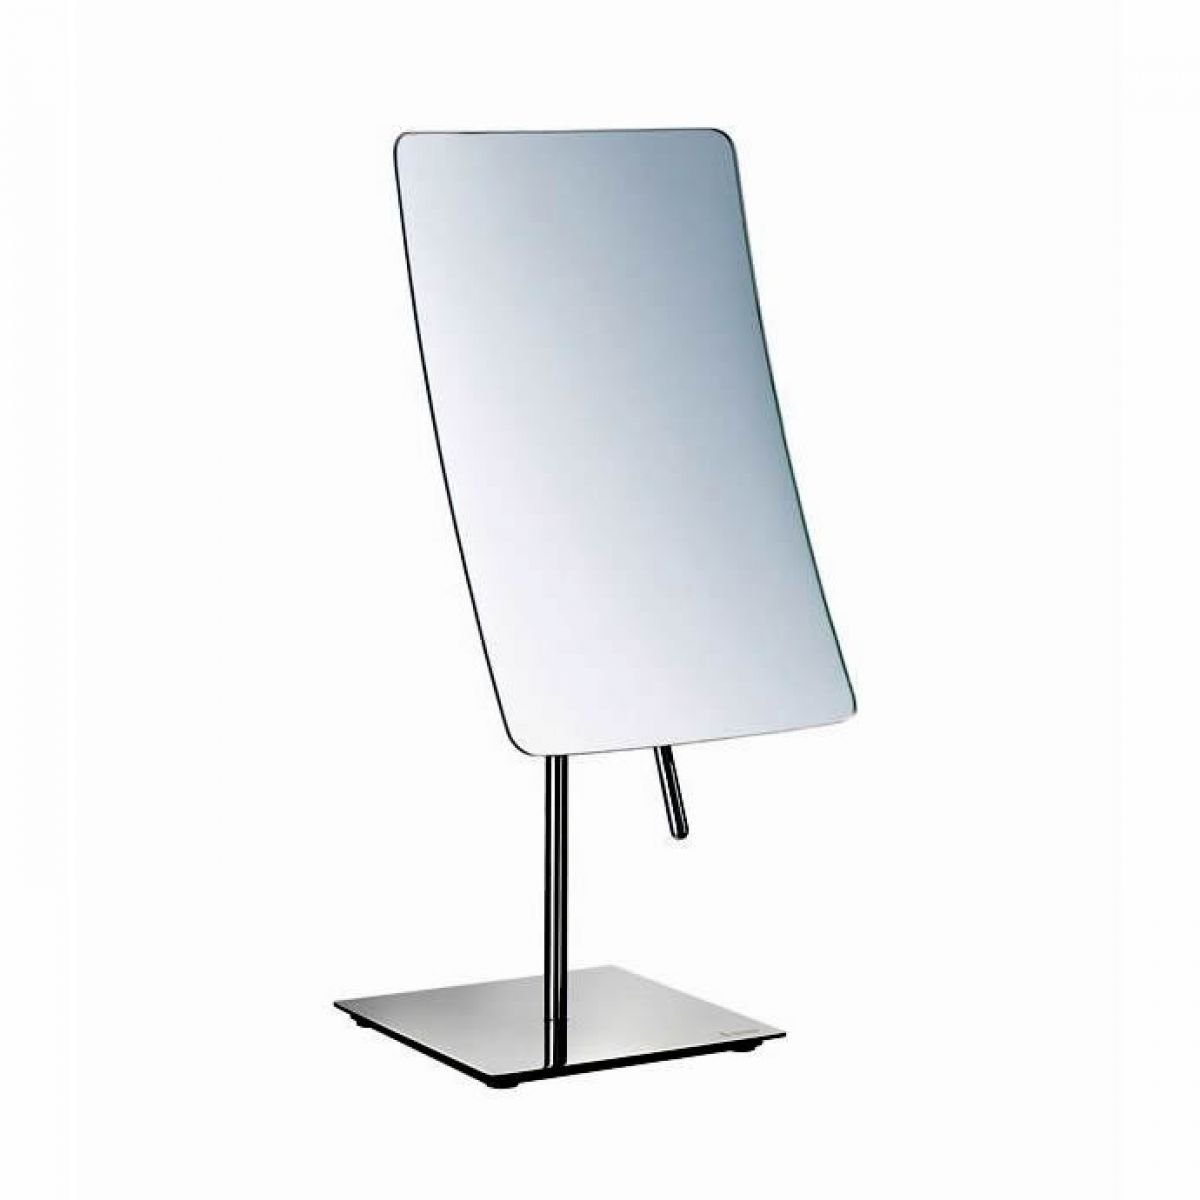 Free Standing Bathroom Mirrors Buy Smedbo Bathroom Accessories From Ukbathrooms